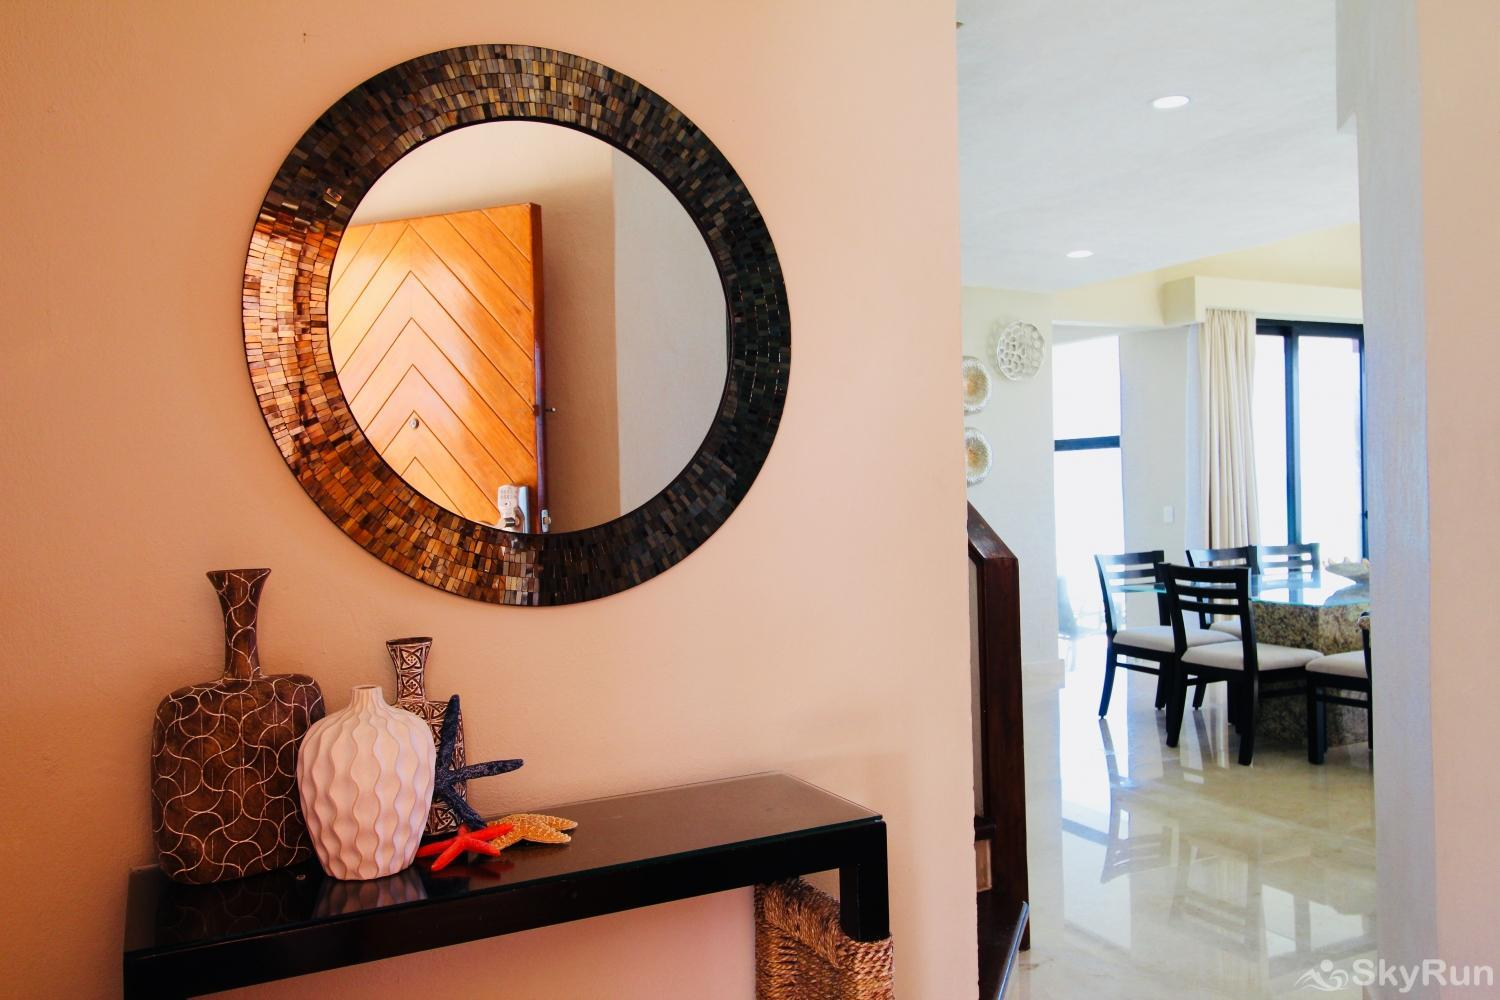 Best Beachfront Private Villa , 4Bdr | Omni Cancun Hotel and Villas PRME location Resort Kinich Villa 33